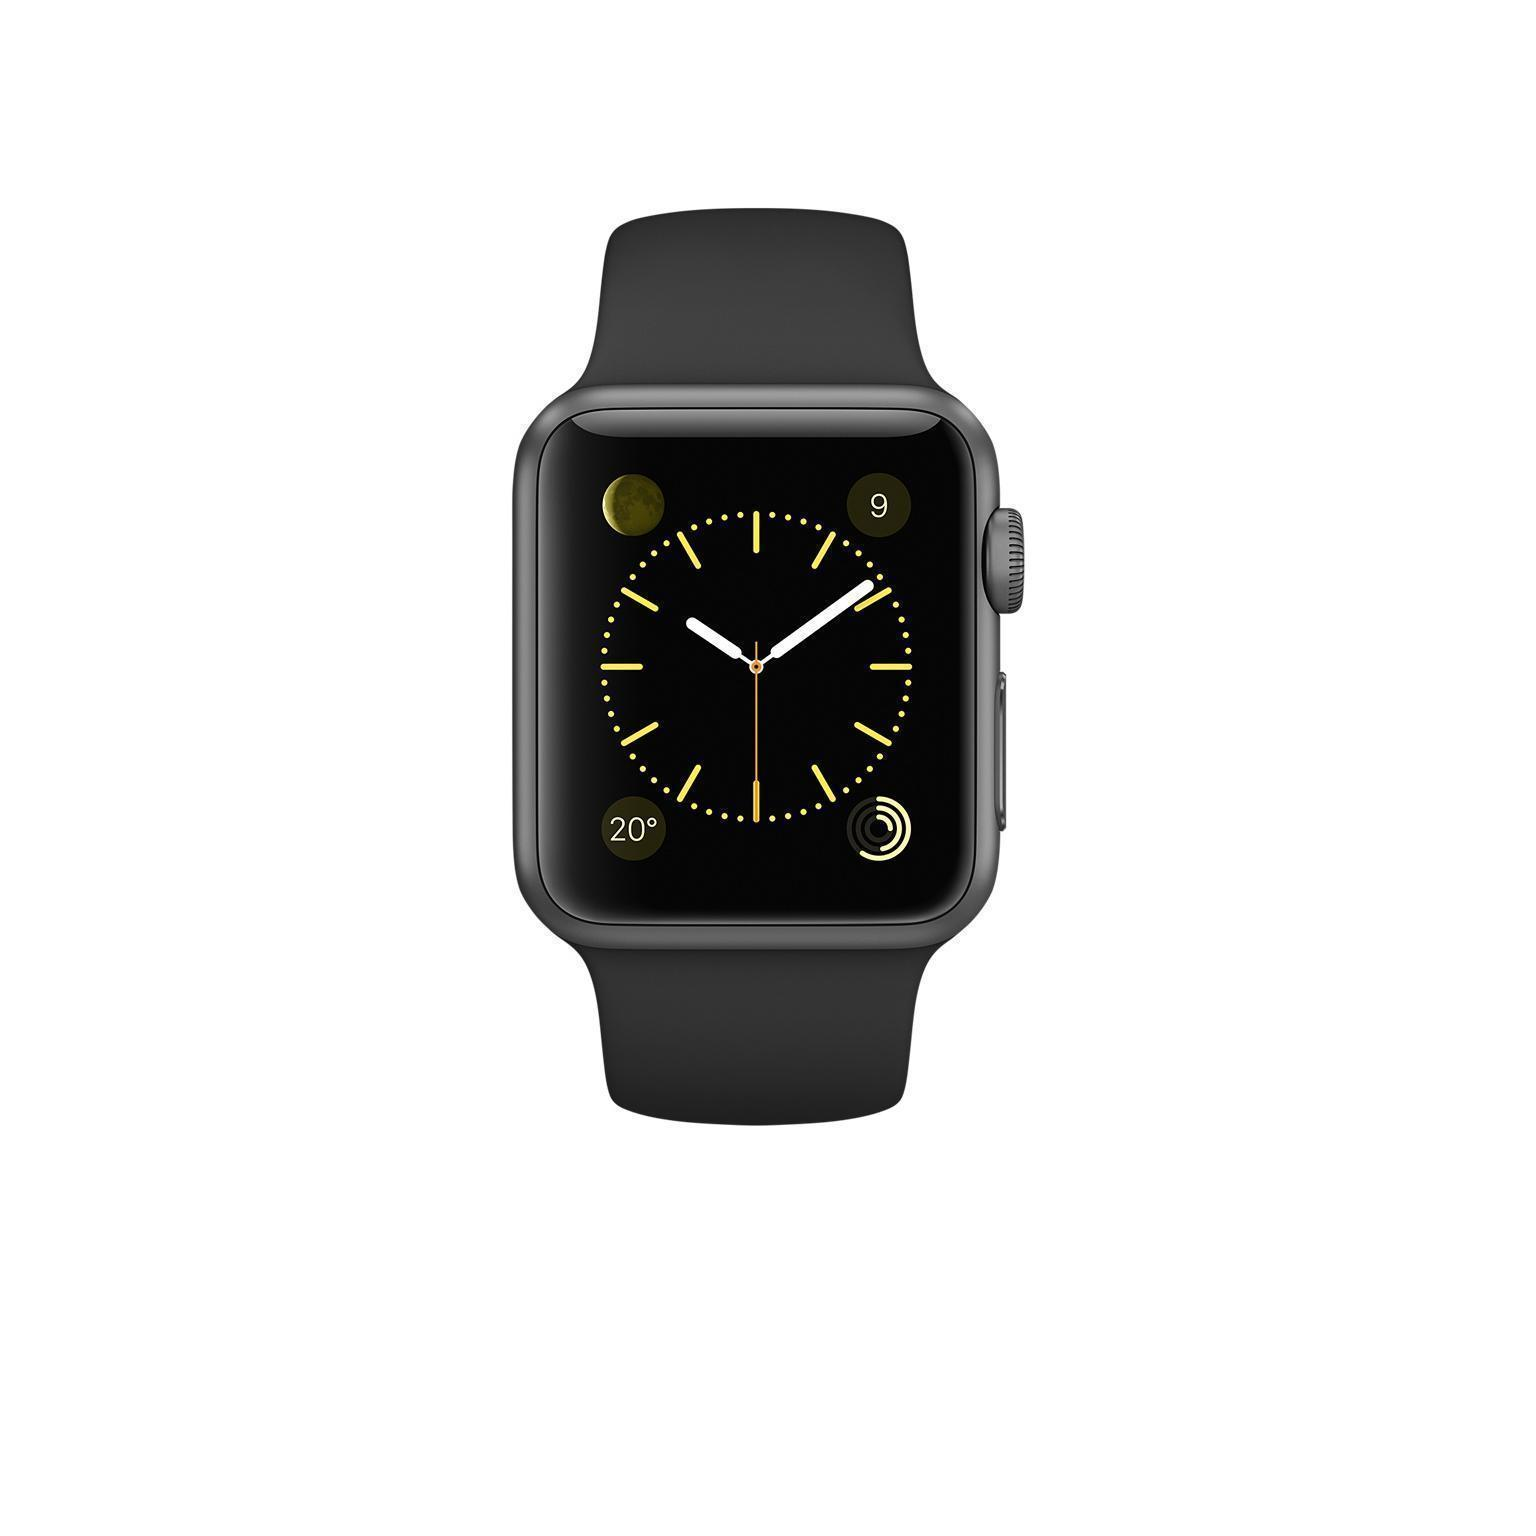 Apple Watch 38 mm - Aluminium Gris sidéral - Bracelet Sport noir